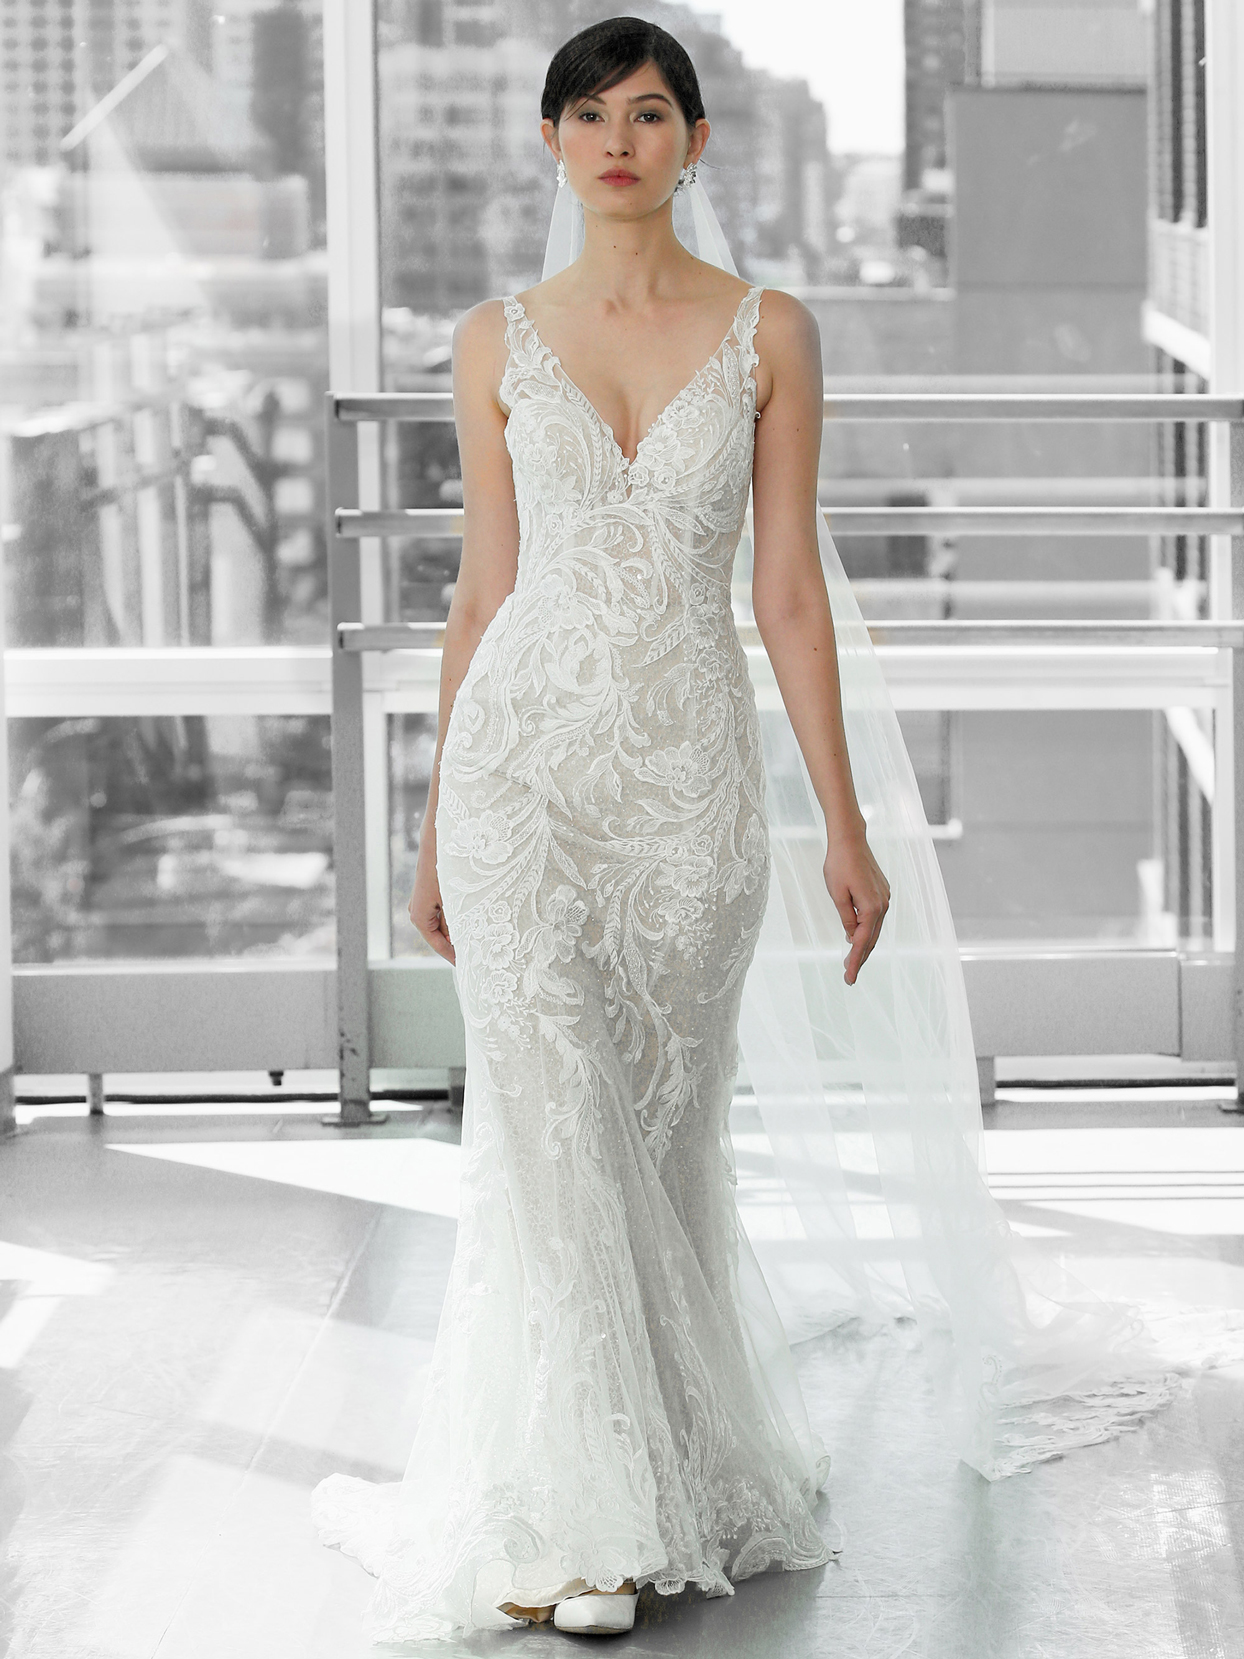 Justin Alexander Signature sequin lace illusion v-neck fit to flare wedding dress fall 2020